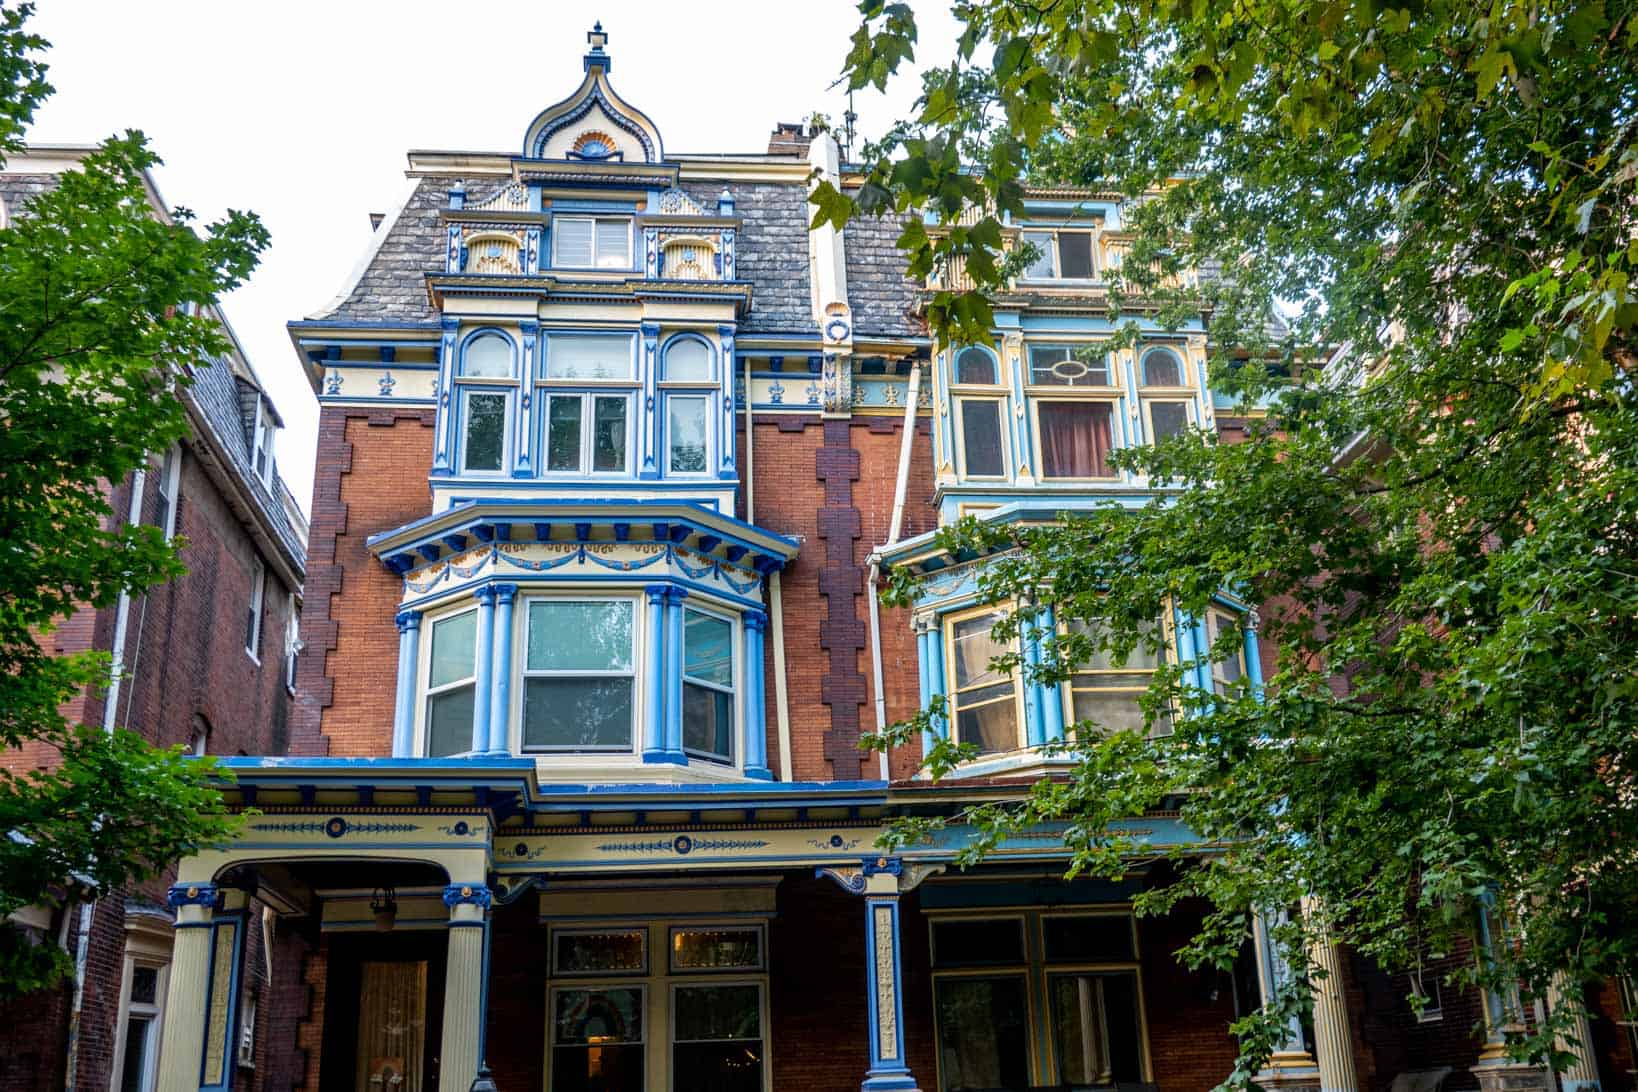 Brick Queen Anne style twin homes with blue accents